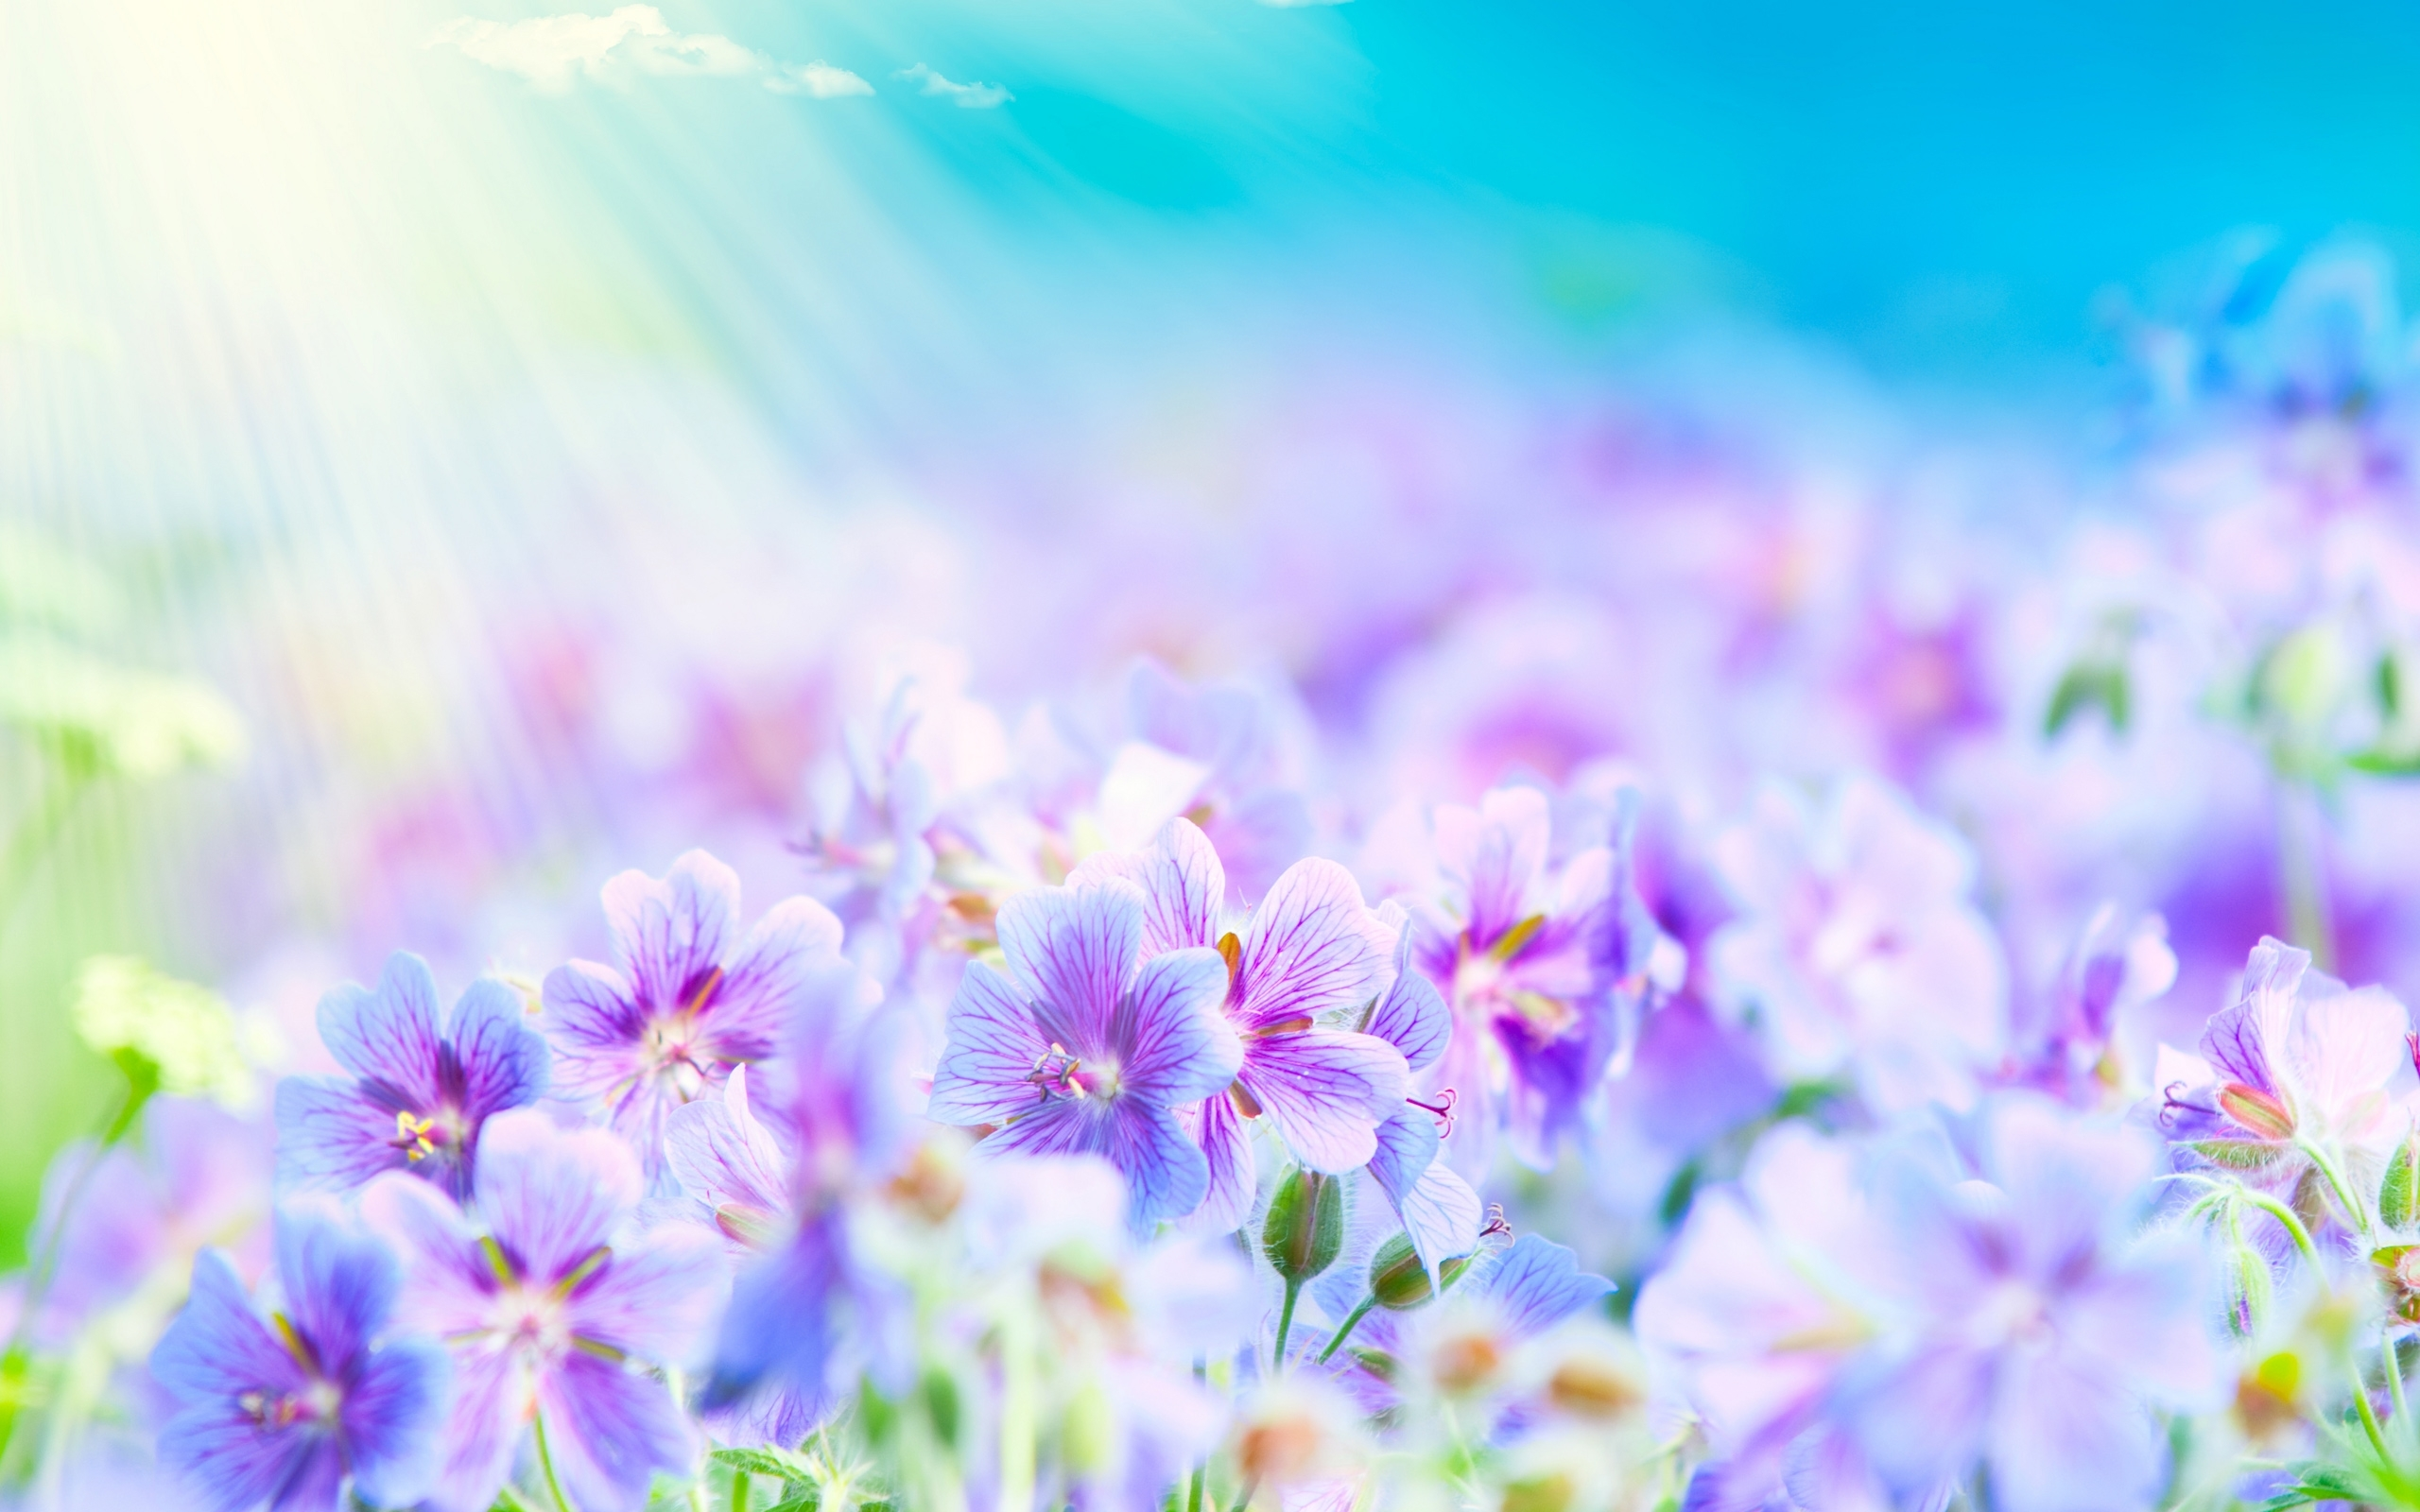 16141 Wallpapers and Background images on your desktop. Download Background, Plants, Flowers pictures on PC for free